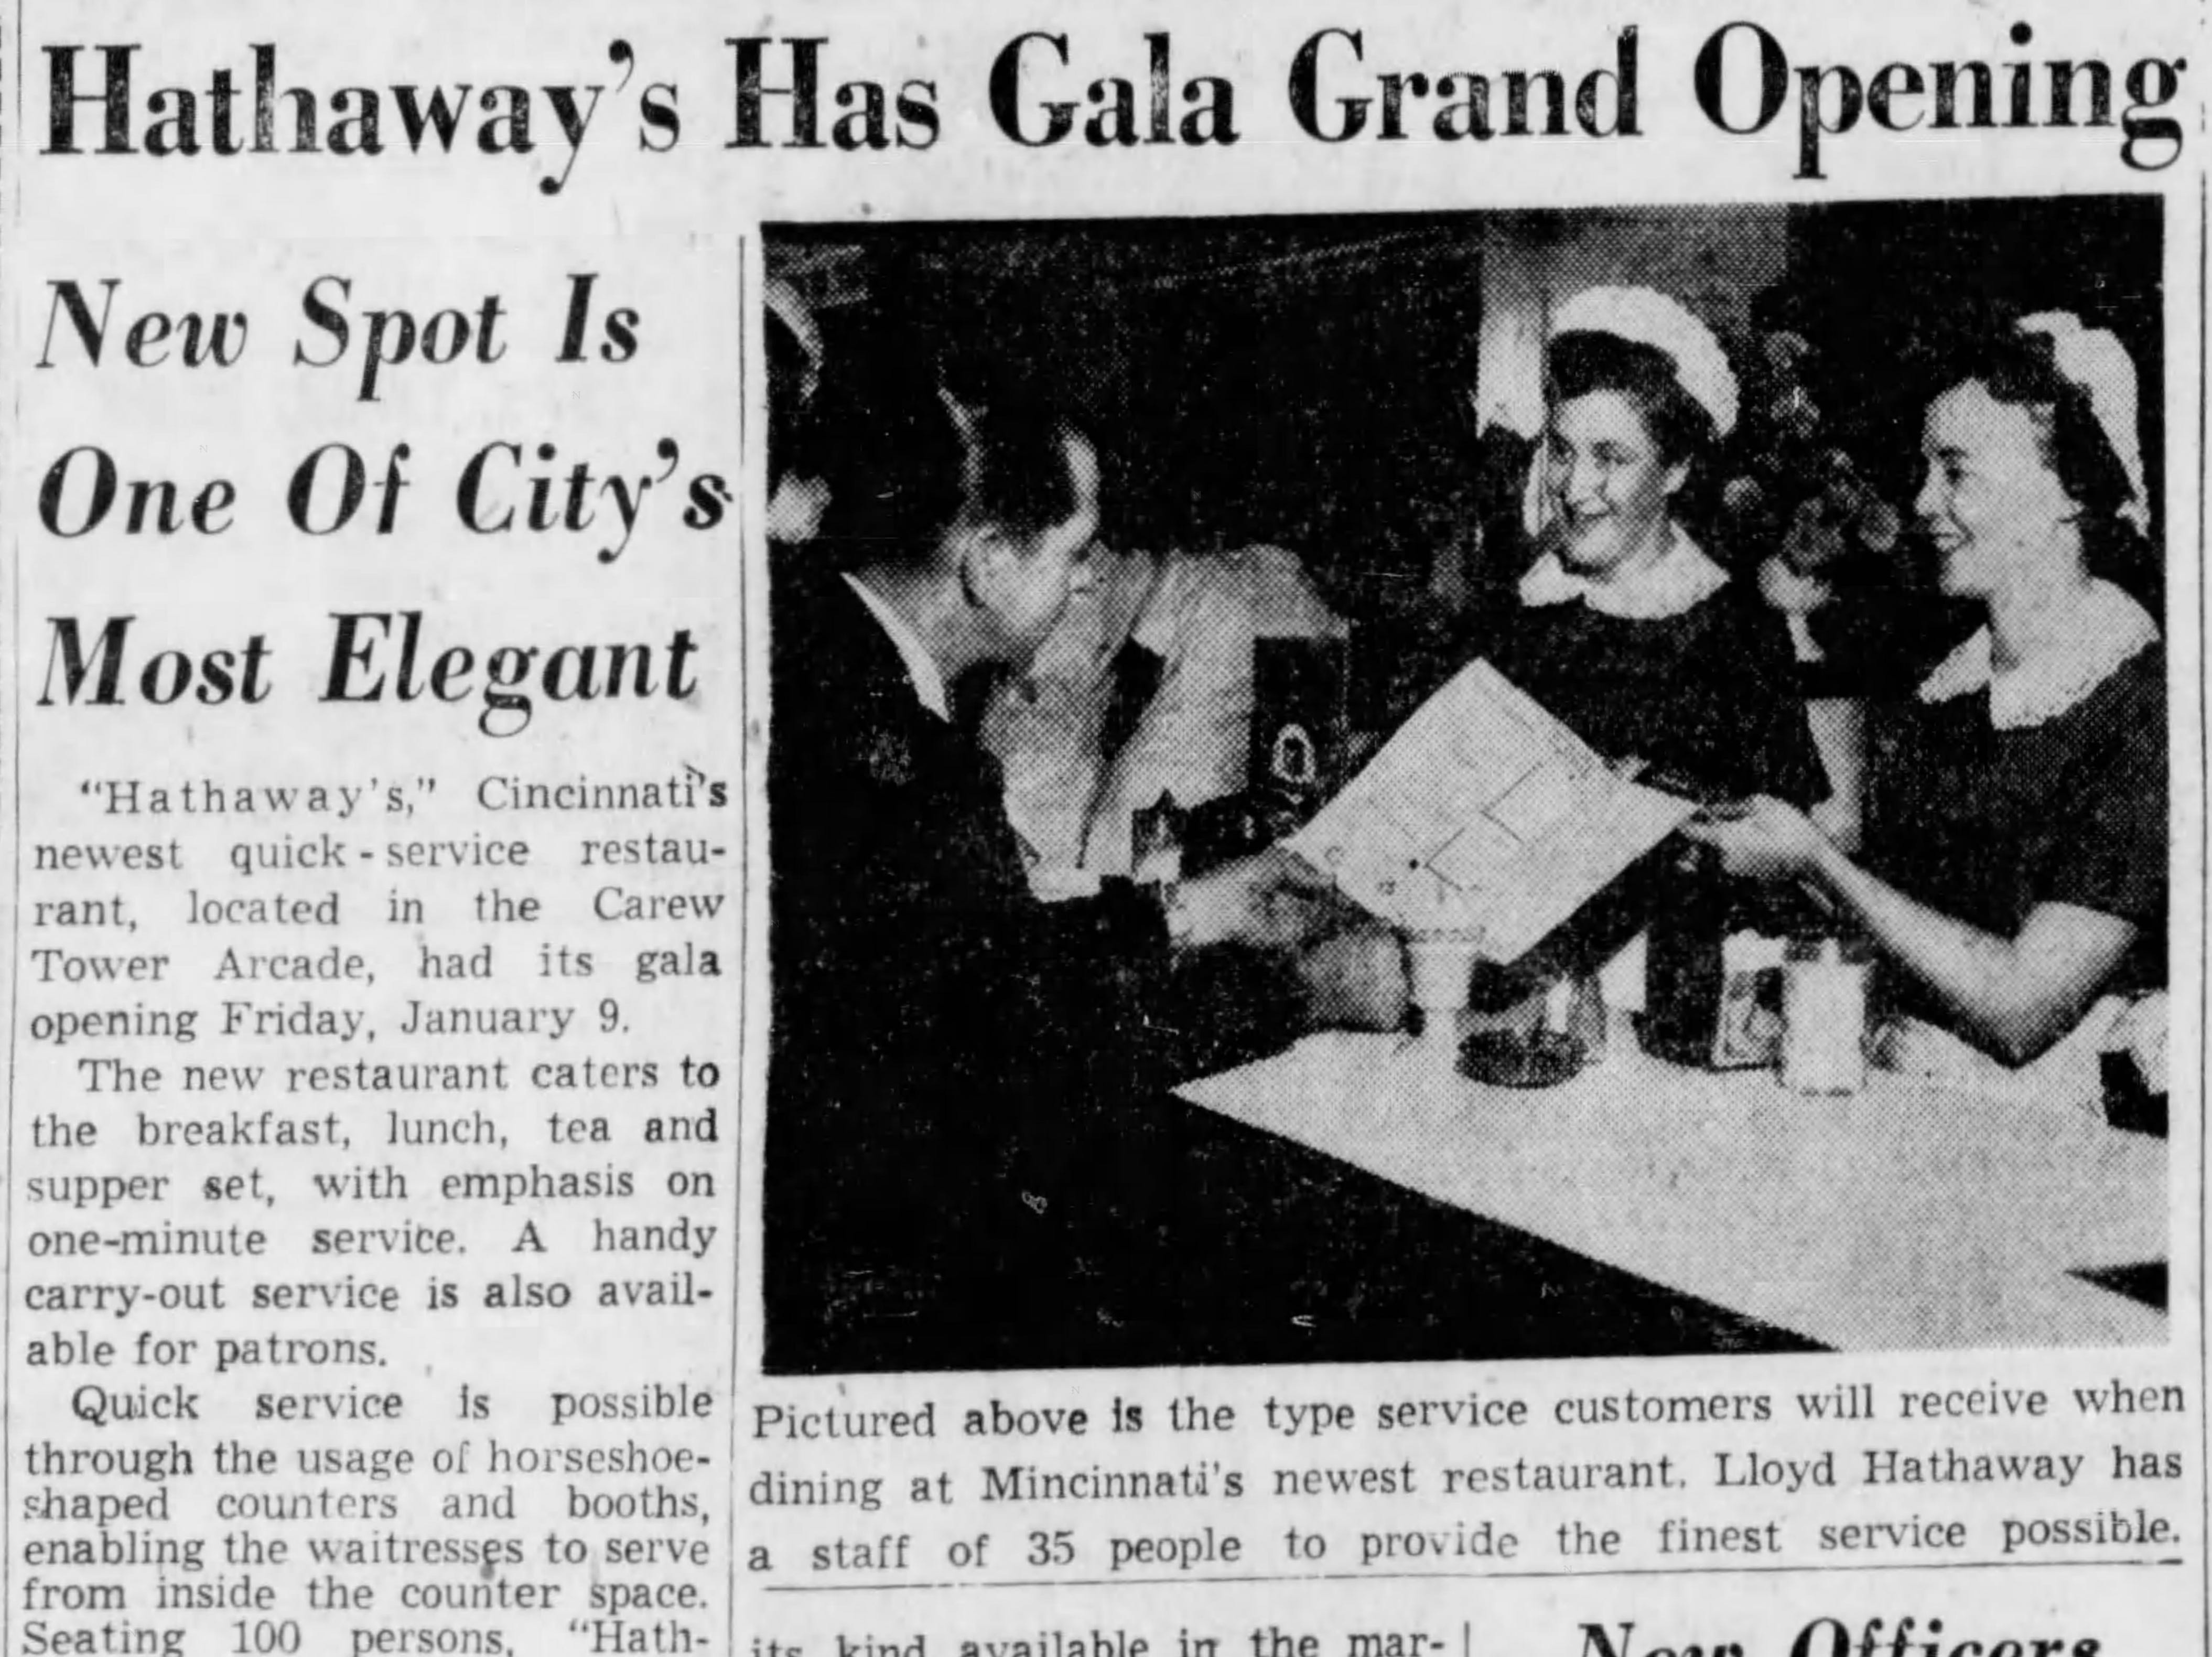 JANUARY 11, 1958: Hathaway's Has Gala Grand Opening. The Cincinnati Enquirer article, 1/11/1958. Hathaway's opens in Carew Tower. Scanned 1/17/2019